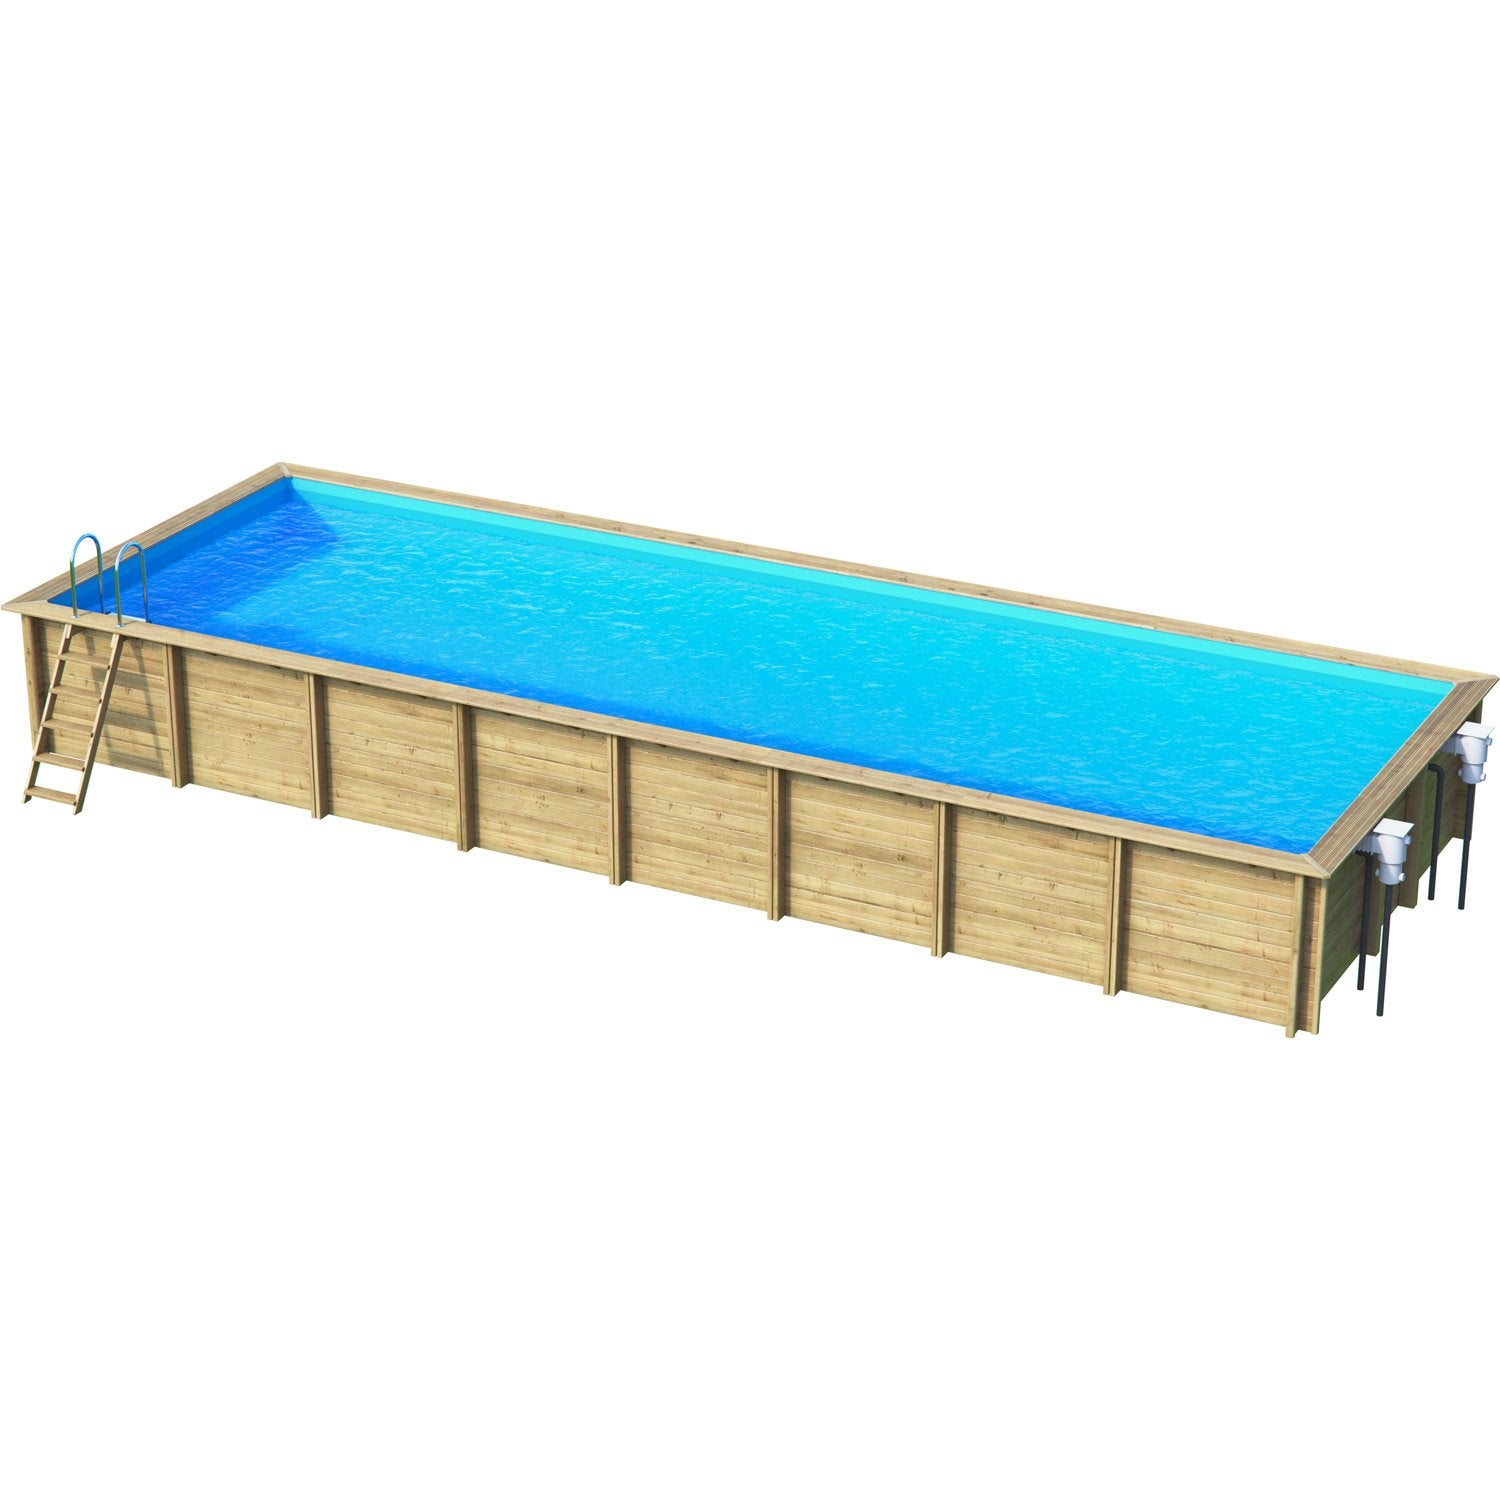 Procopi piscine for Piscine hors sol blooma